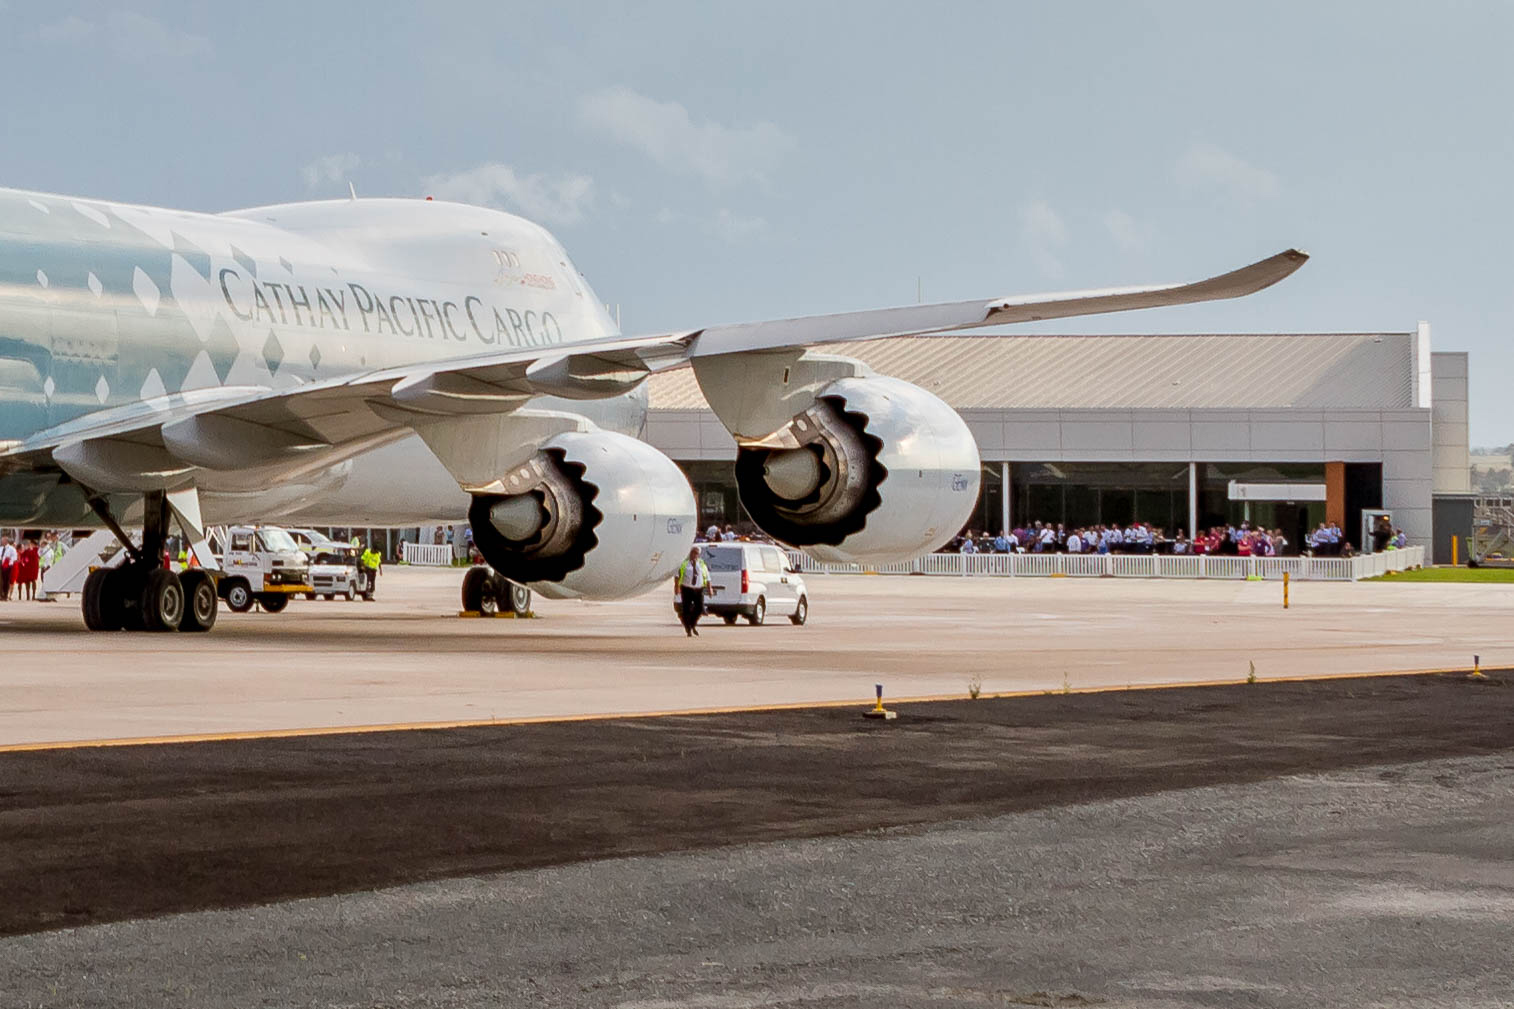 Cathay Pacific Cargo B747F takes off from Wellcamp